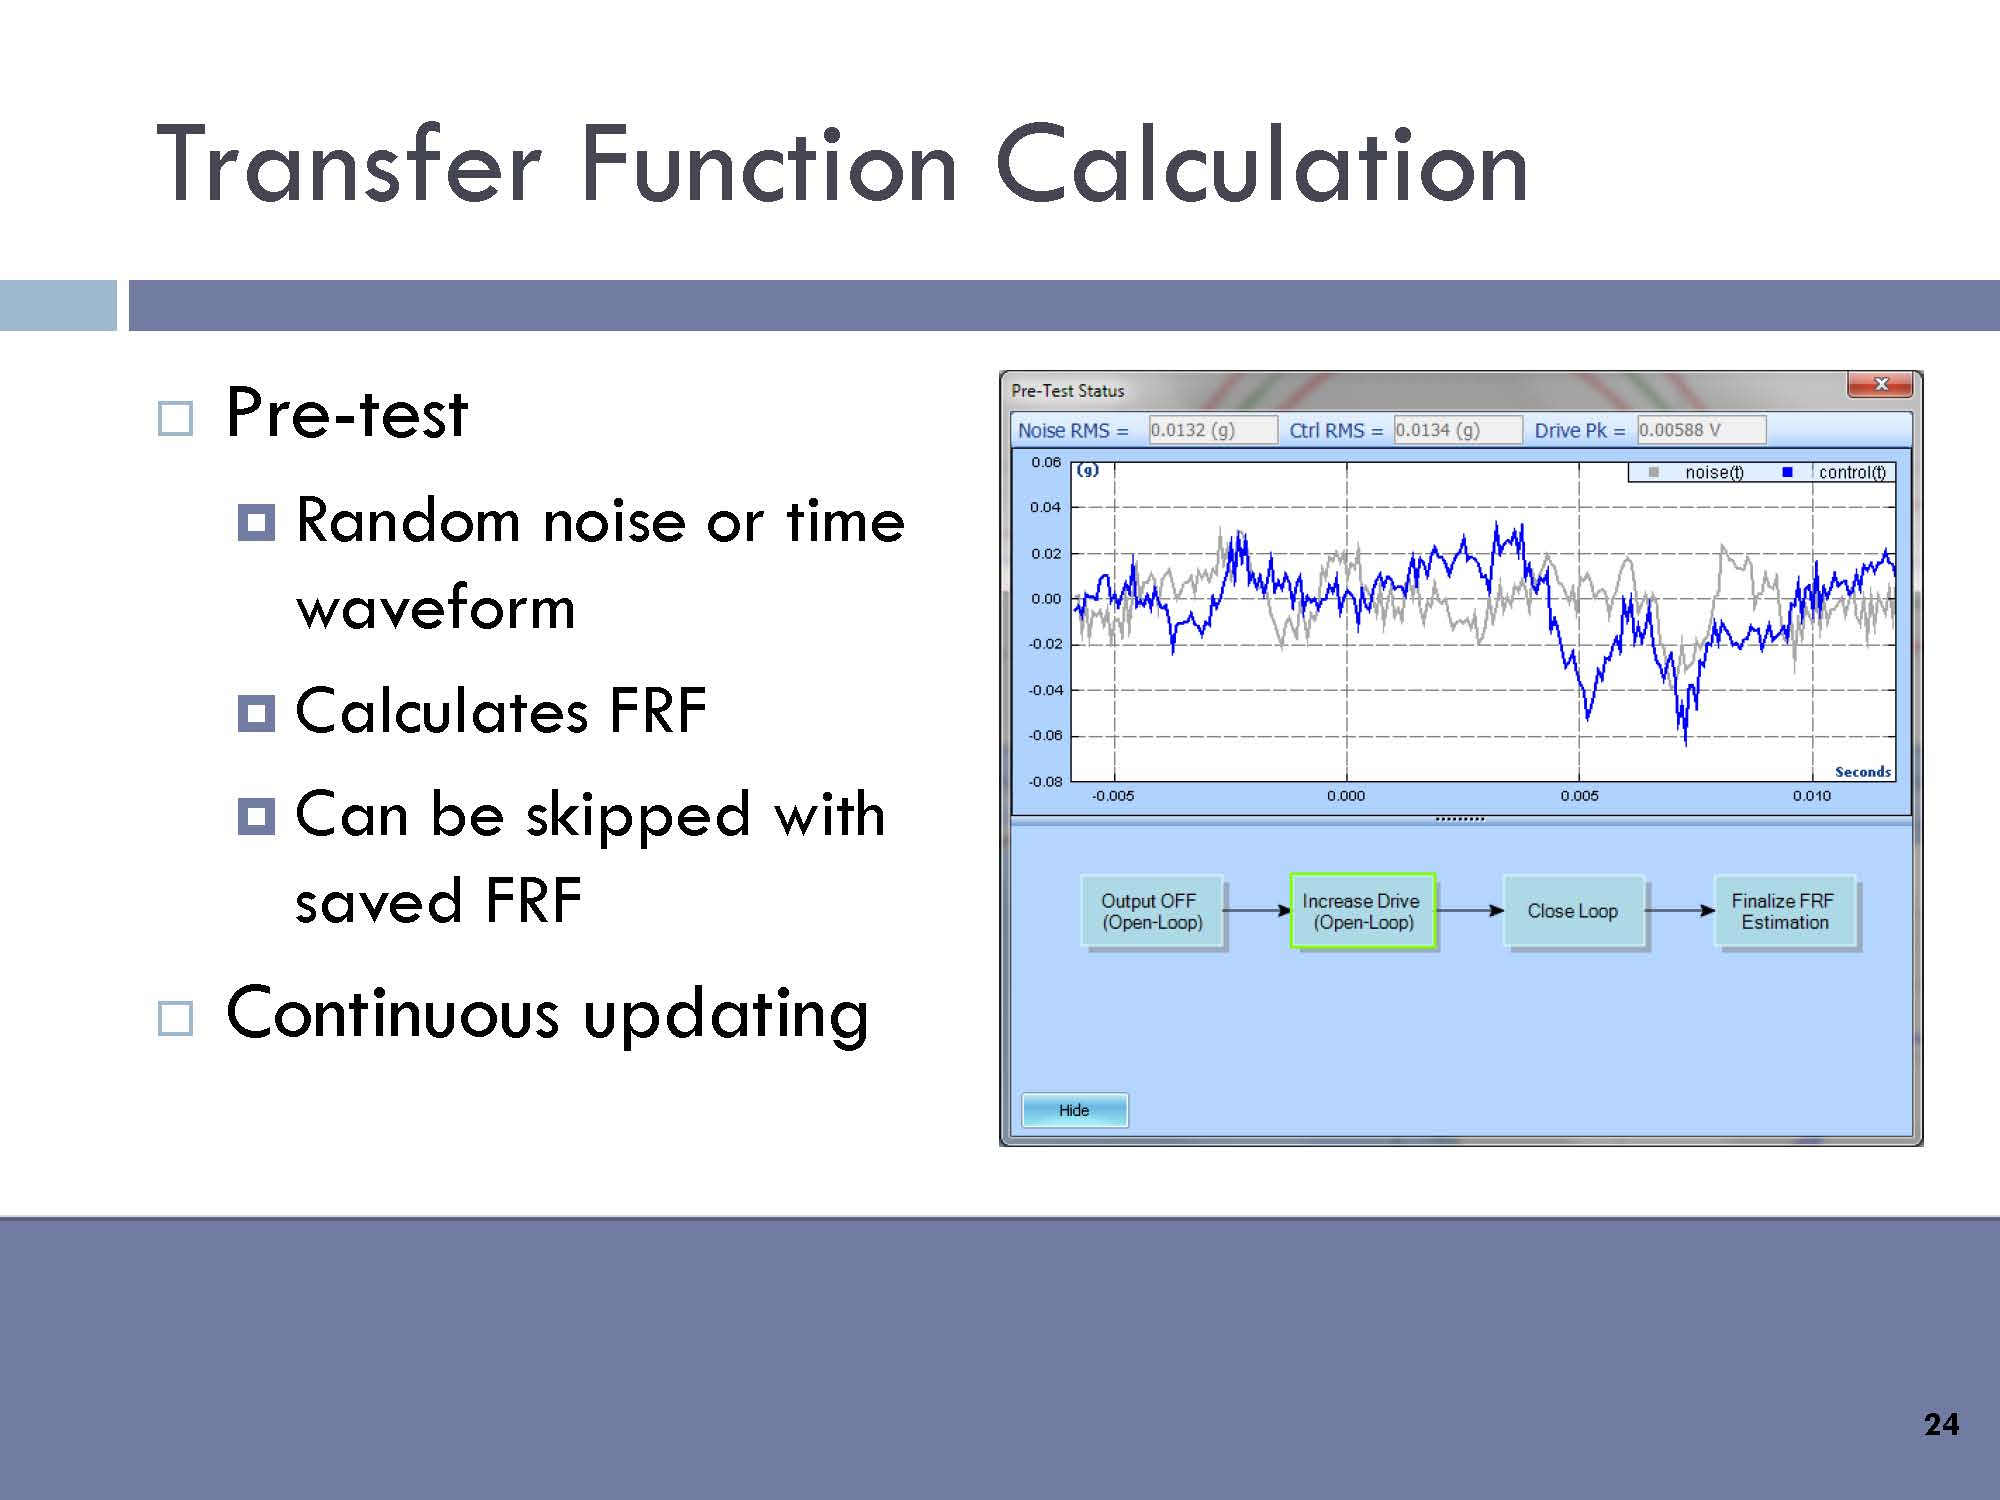 "Transfer Function Calculation: Pretest (Random noise or time waveform, calculates FRF, can be skipped with saved FRF.) Continuous updating.                                                                                                                                                                                                                                                                                                   /* Style Definitions */  table.MsoNormalTable 	{mso-style-name:""Table Normal""; 	mso-tstyle-rowband-size:0; 	mso-tstyle-colband-size:0; 	mso-style-noshow:yes; 	mso-style-priority:99; 	mso-style-qformat:yes; 	mso-style-parent:""""; 	mso-padding-alt:0in 5.4pt 0in 5.4pt; 	mso-para-margin-top:0in; 	mso-para-margin-right:0in; 	mso-para-margin-bottom:10.0pt; 	mso-para-margin-left:0in; 	line-height:115%; 	mso-pagination:widow-orphan; 	font-size:11.0pt; 	font-family:""Calibri"",""sans-serif""; 	mso-ascii-font-family:Calibri; 	mso-ascii-theme-font:minor-latin; 	mso-hansi-font-family:Calibri; 	mso-hansi-theme-font:minor-latin;}"